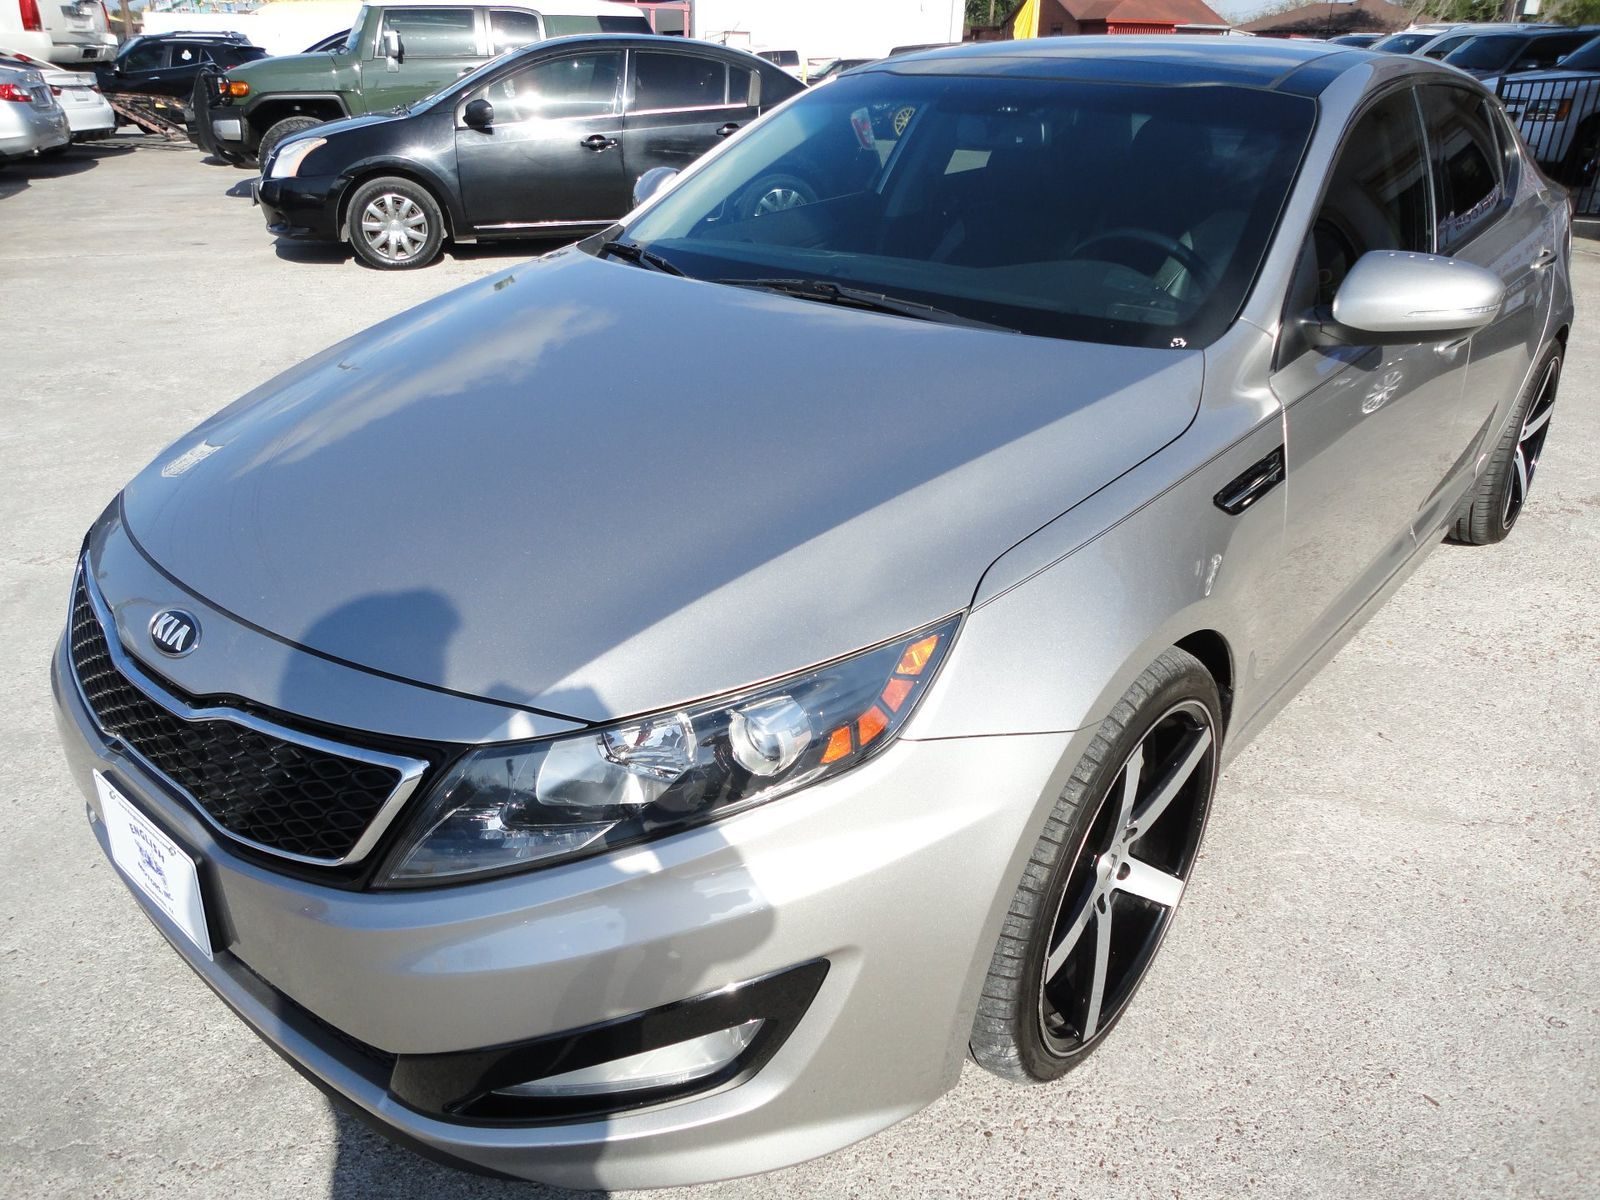 said who drive nothing luxury front limited sx kia in optima